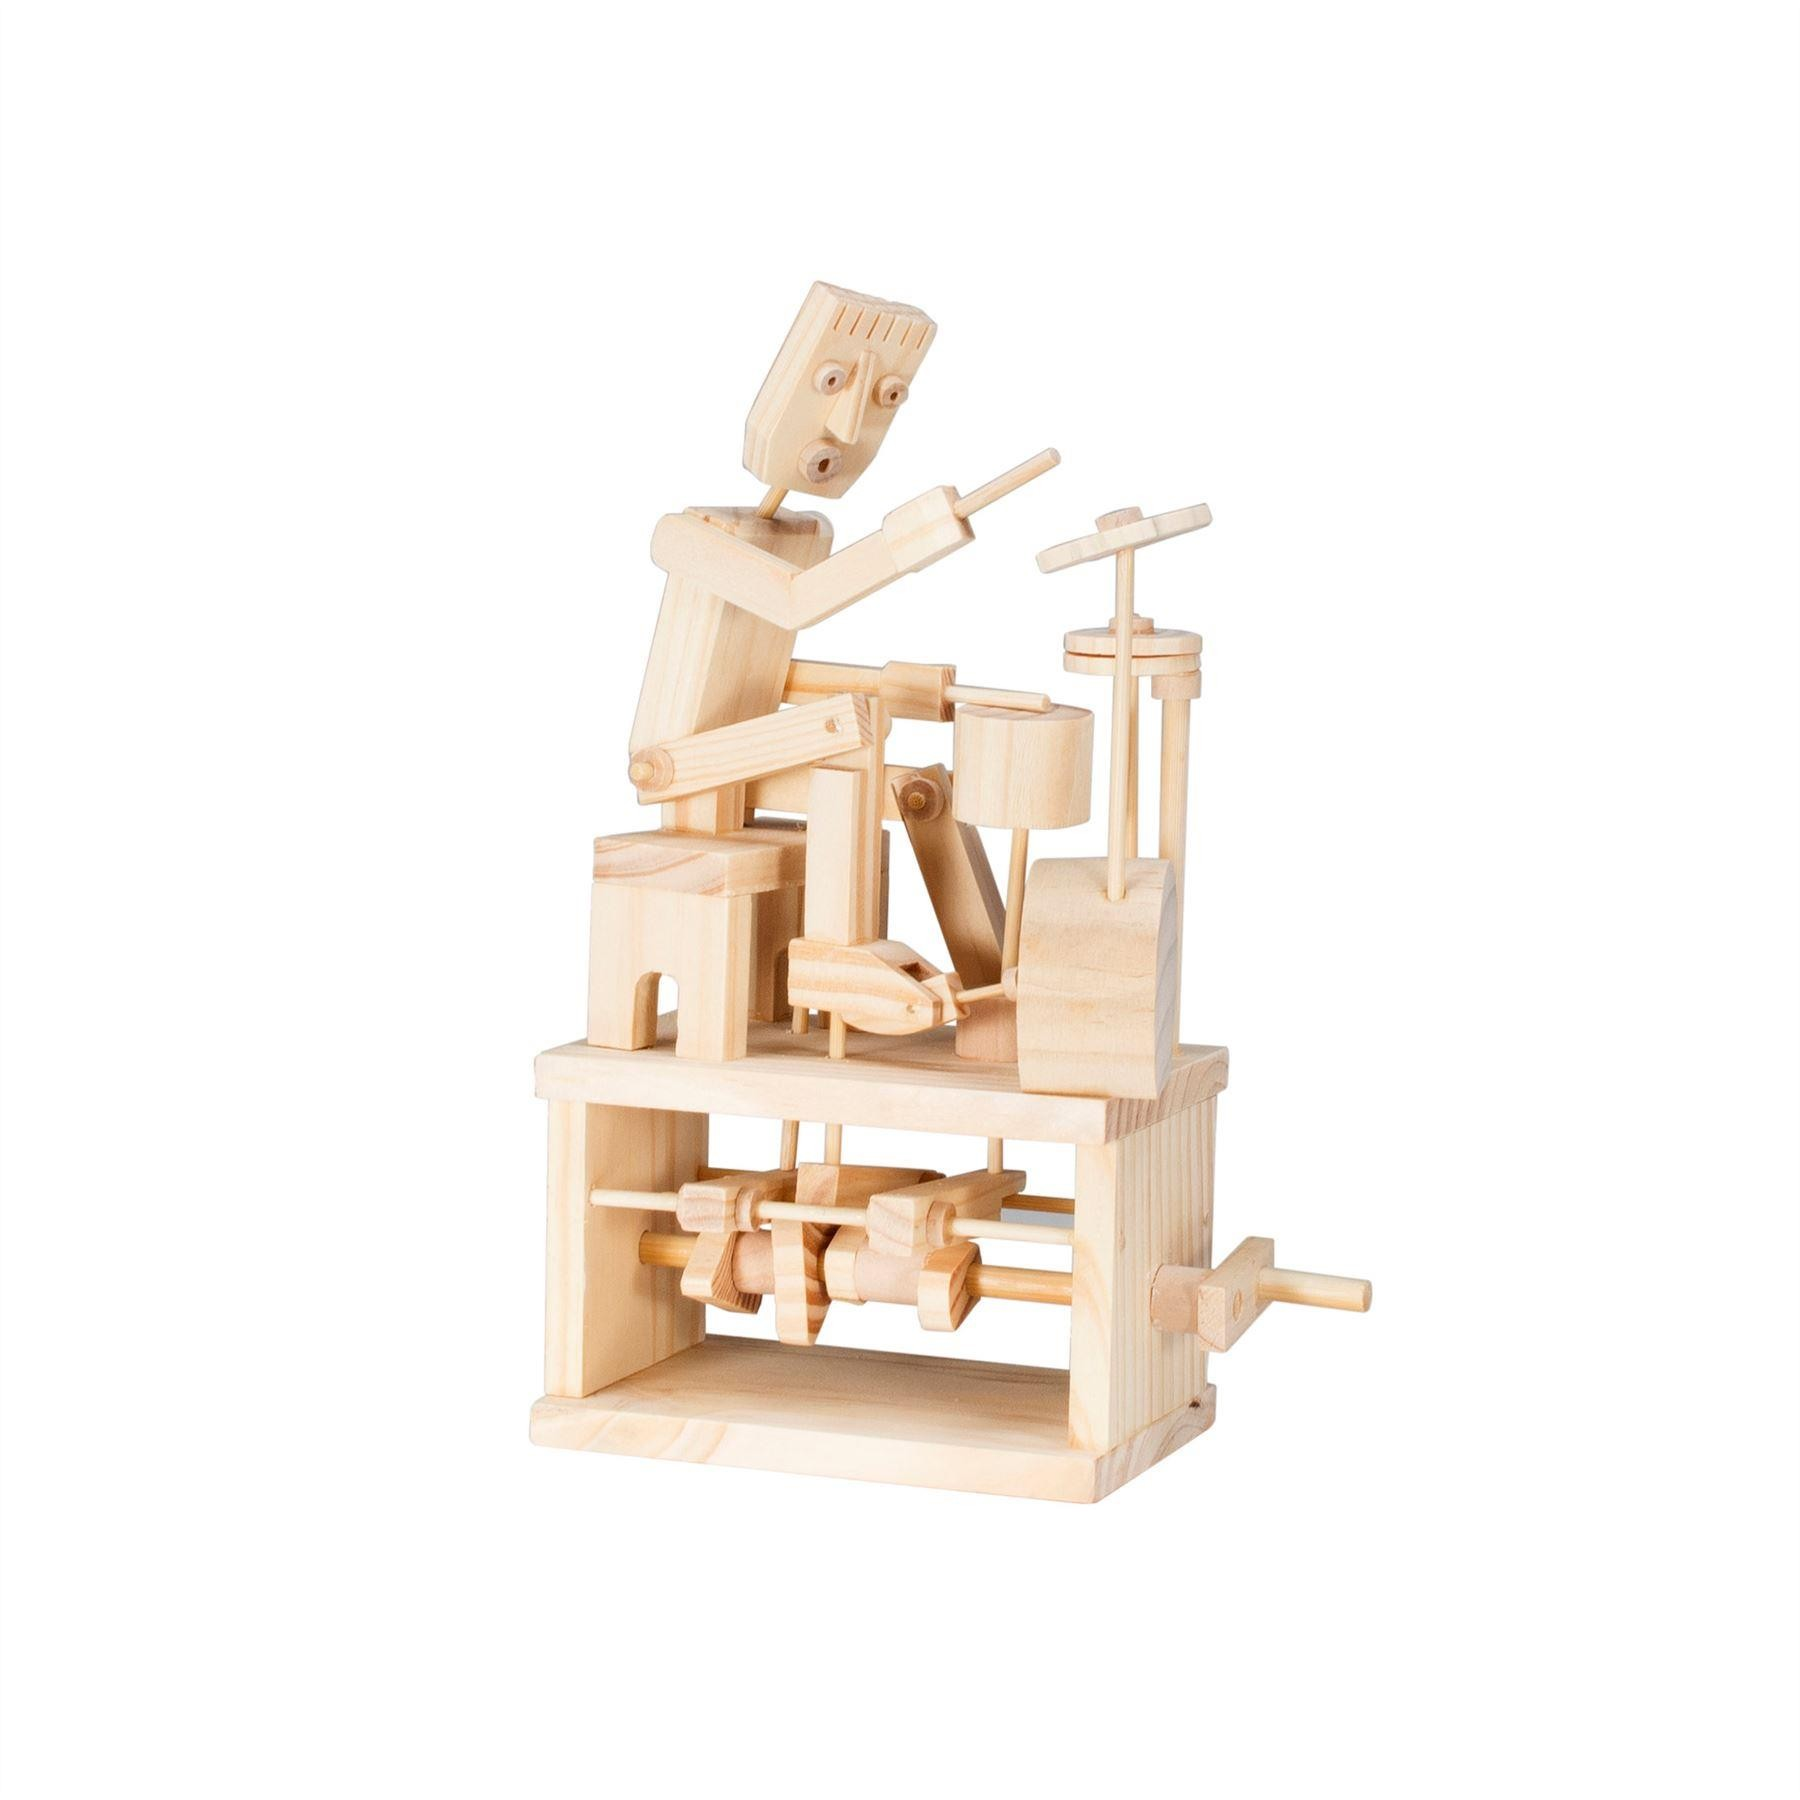 Timberkits drummber wooden model flatpack kit